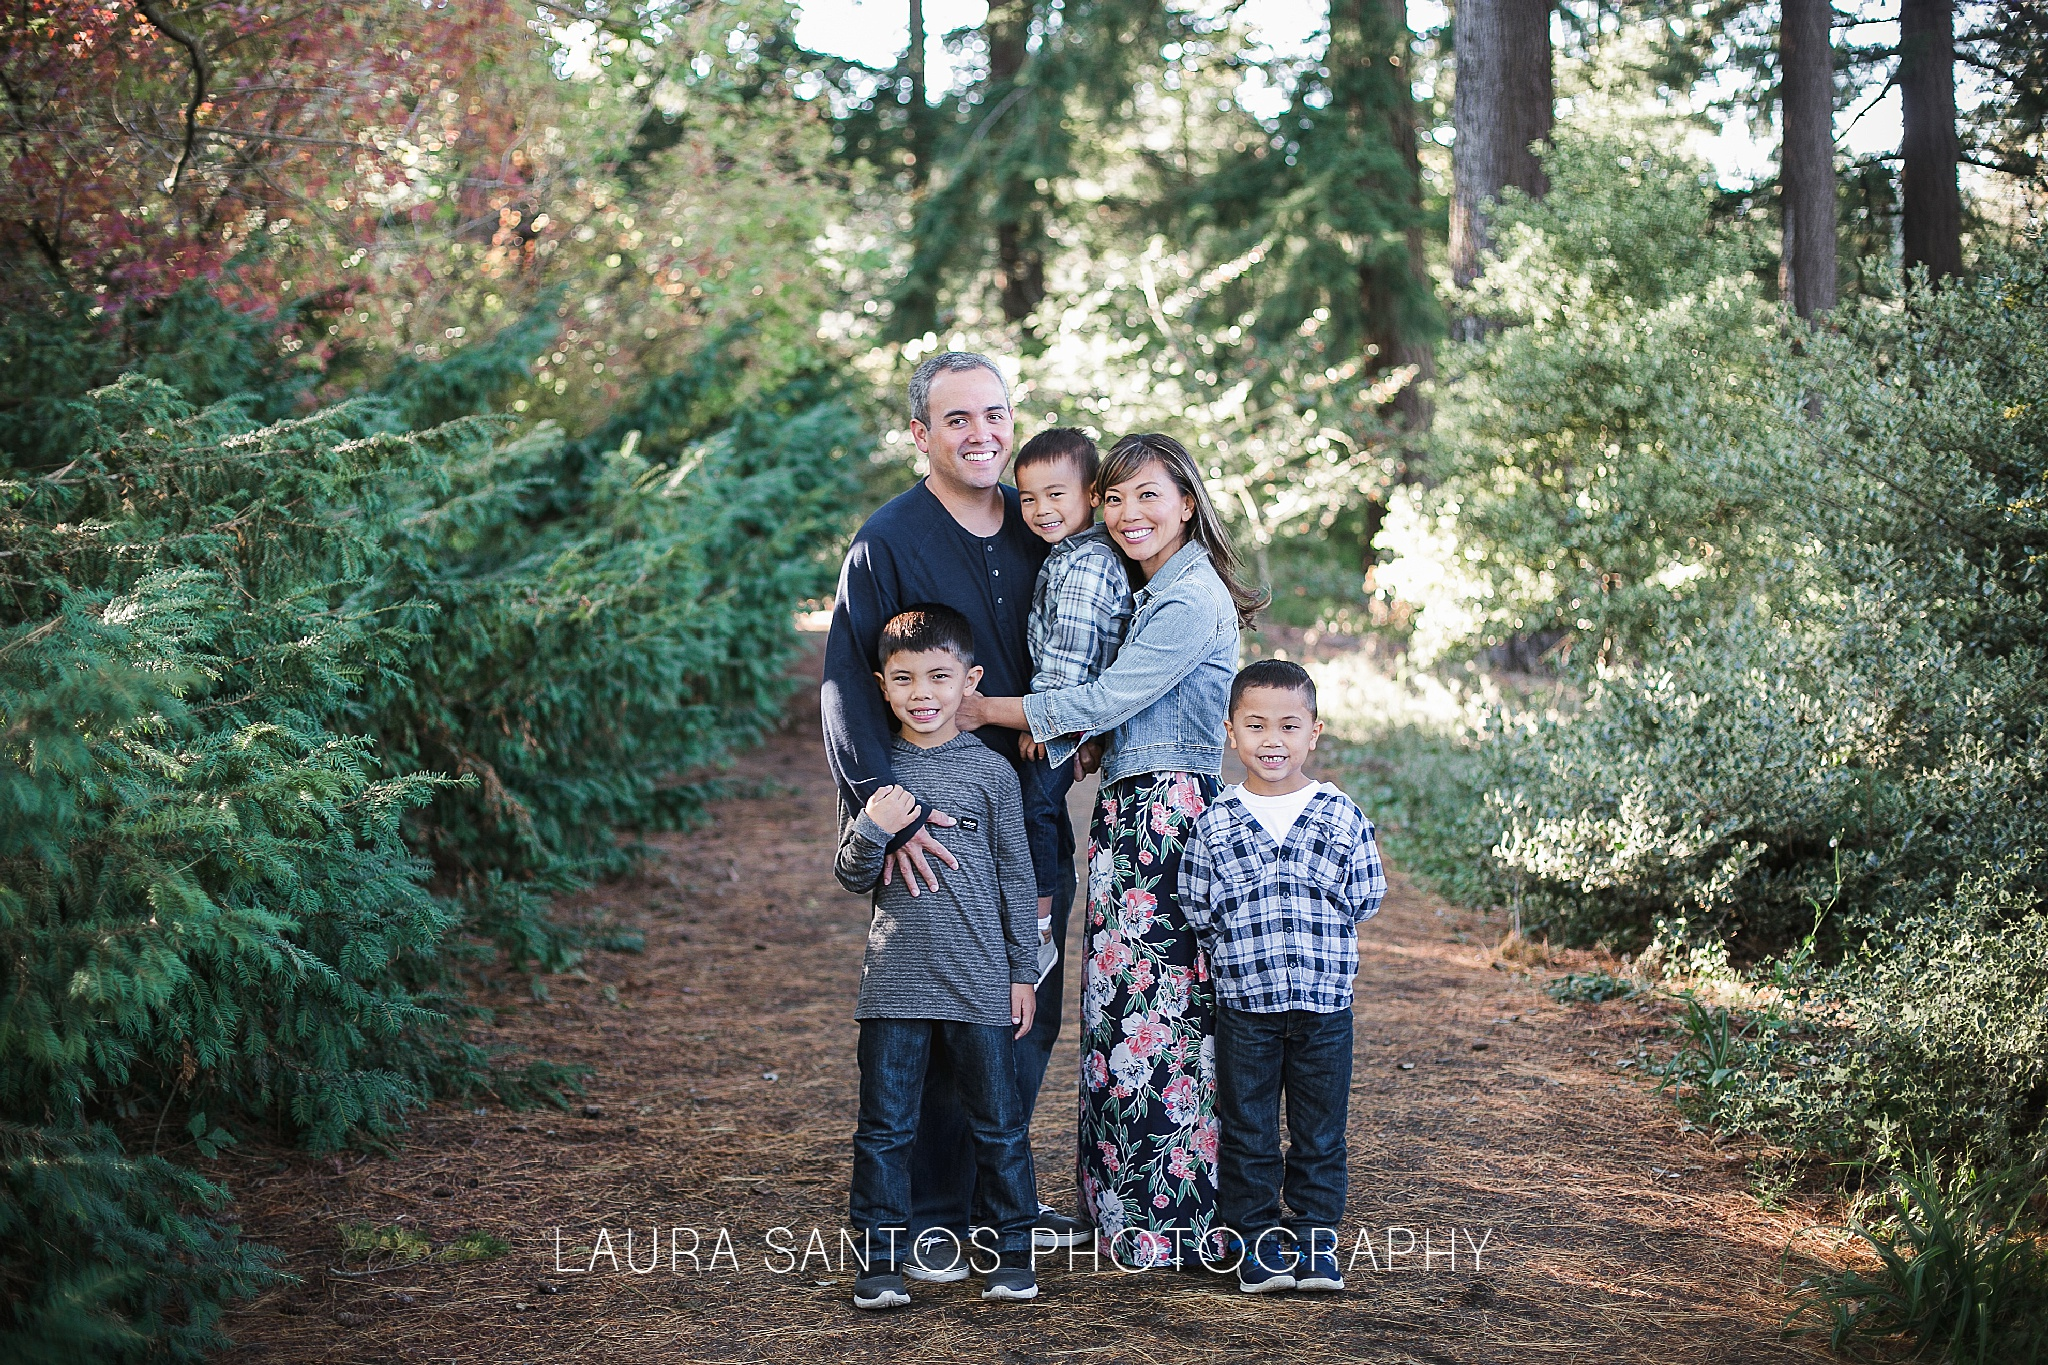 Laura Santos Photography Portland Oregon Family Photographer_0744.jpg